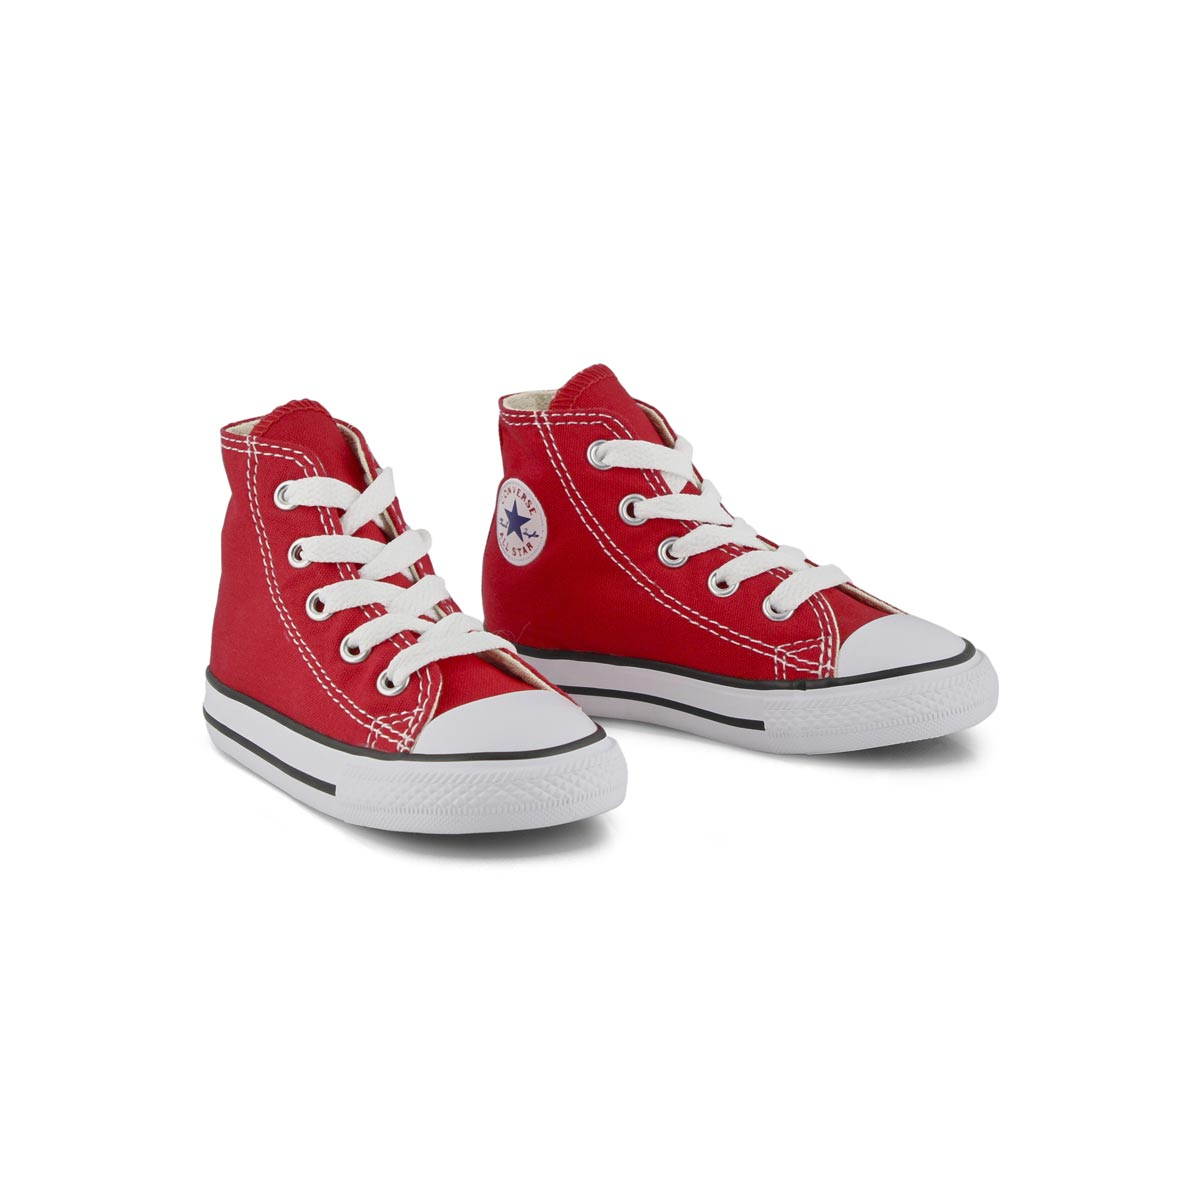 Infs CTAS Core red high top sneaker